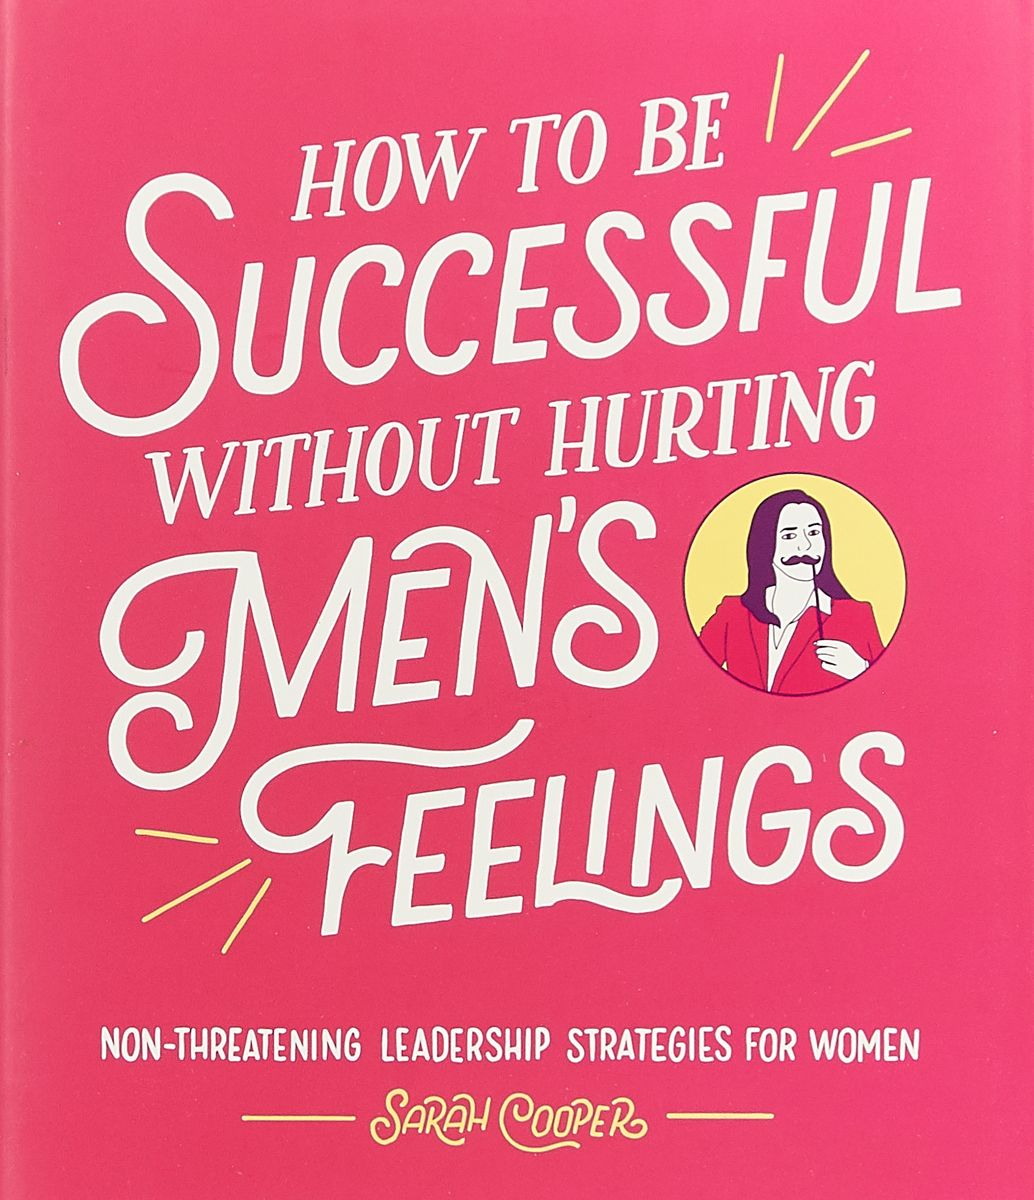 How to Be Successful Without Hurting Men's Feelings: Non-threatening Leadership Strategies for Women megan tschannen moran trust matters leadership for successful schools